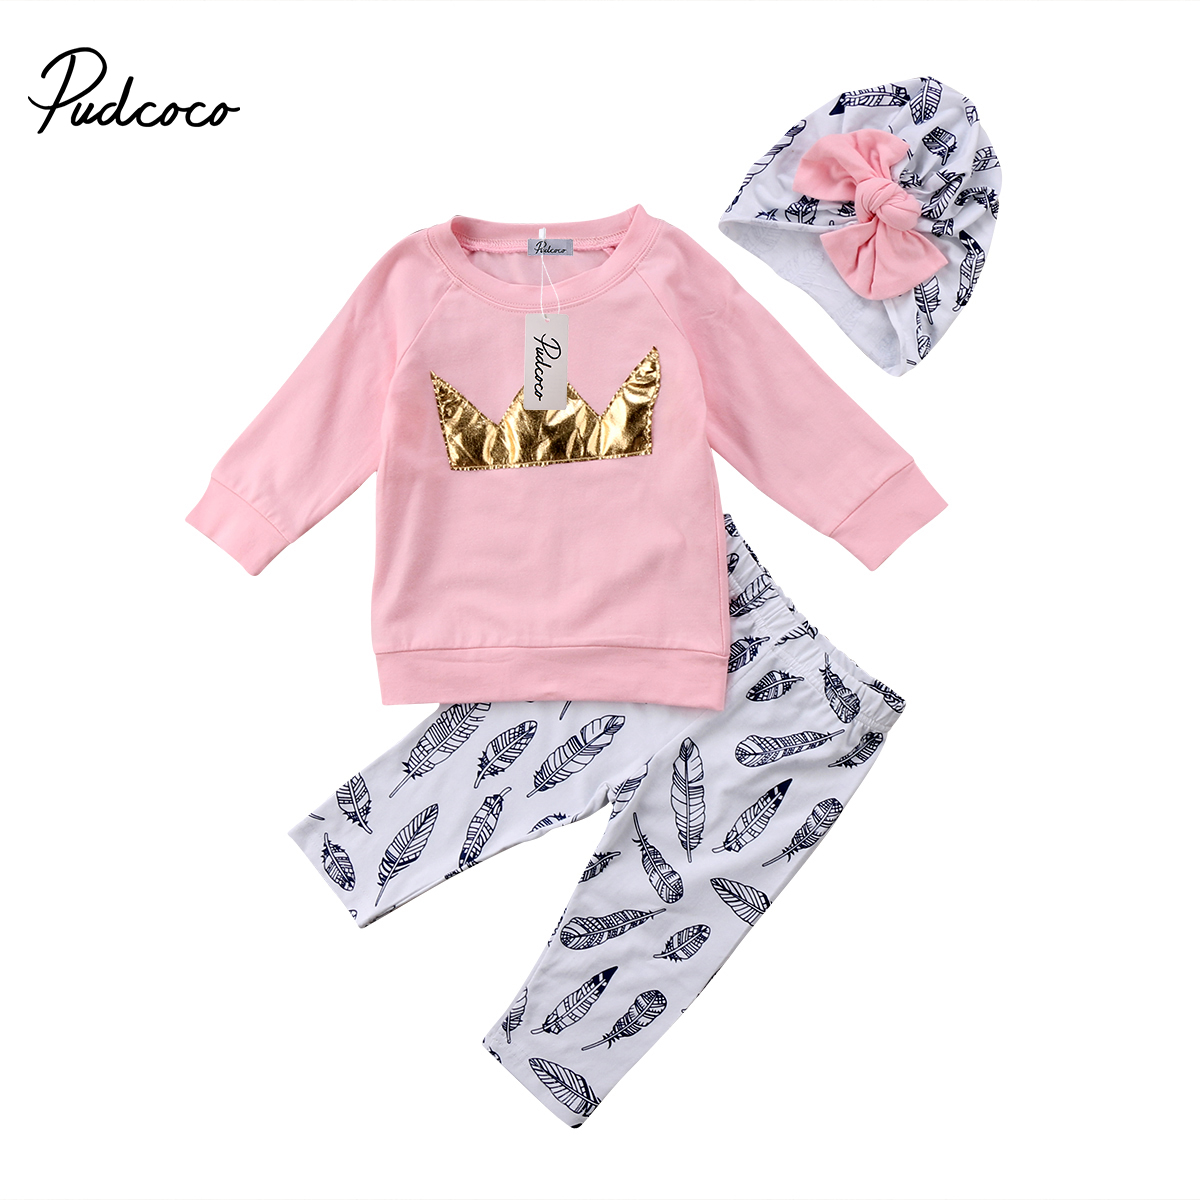 2018 Brand New Adorable Toddler Infant Child Kid Baby Girl Pink Crown Top T-shirt Pants Hat 3Pcs Set Clothes Long Sleeve Outfits